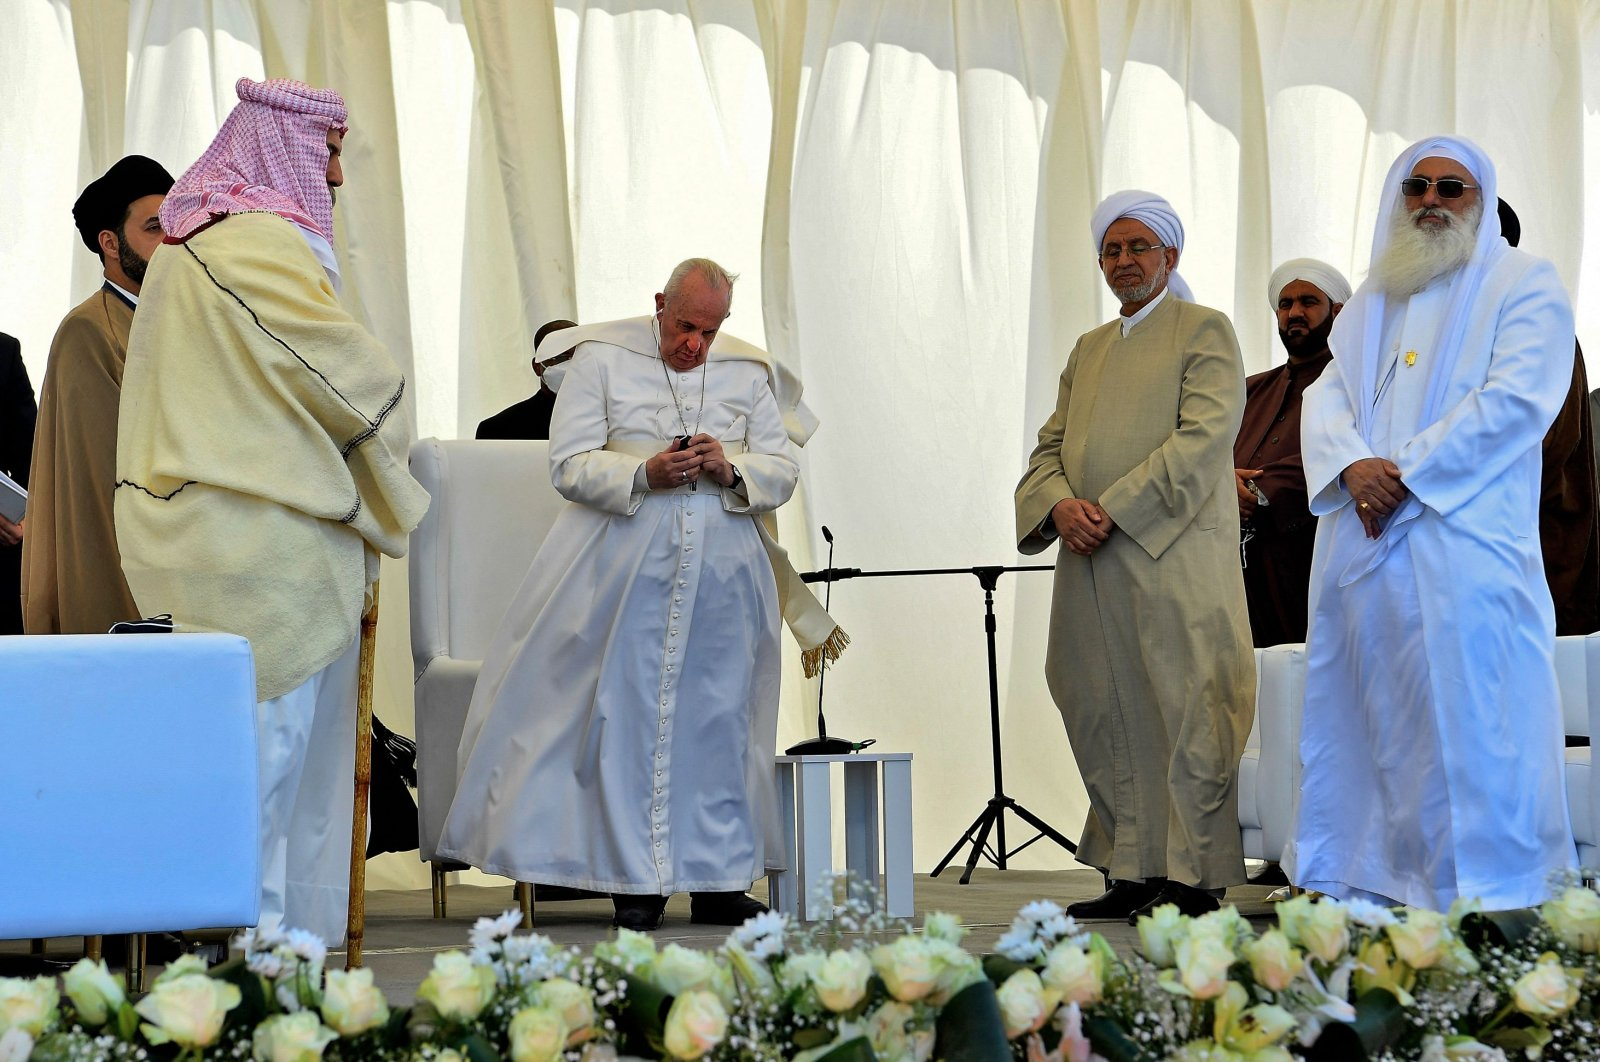 Pope Francis stands with Iraqi religious figures during an interfaith service at the House of Abraham in the ancient city of Ur in southern Iraq's Dhi Qar province, on March 6, 2021. (AFP Photo)